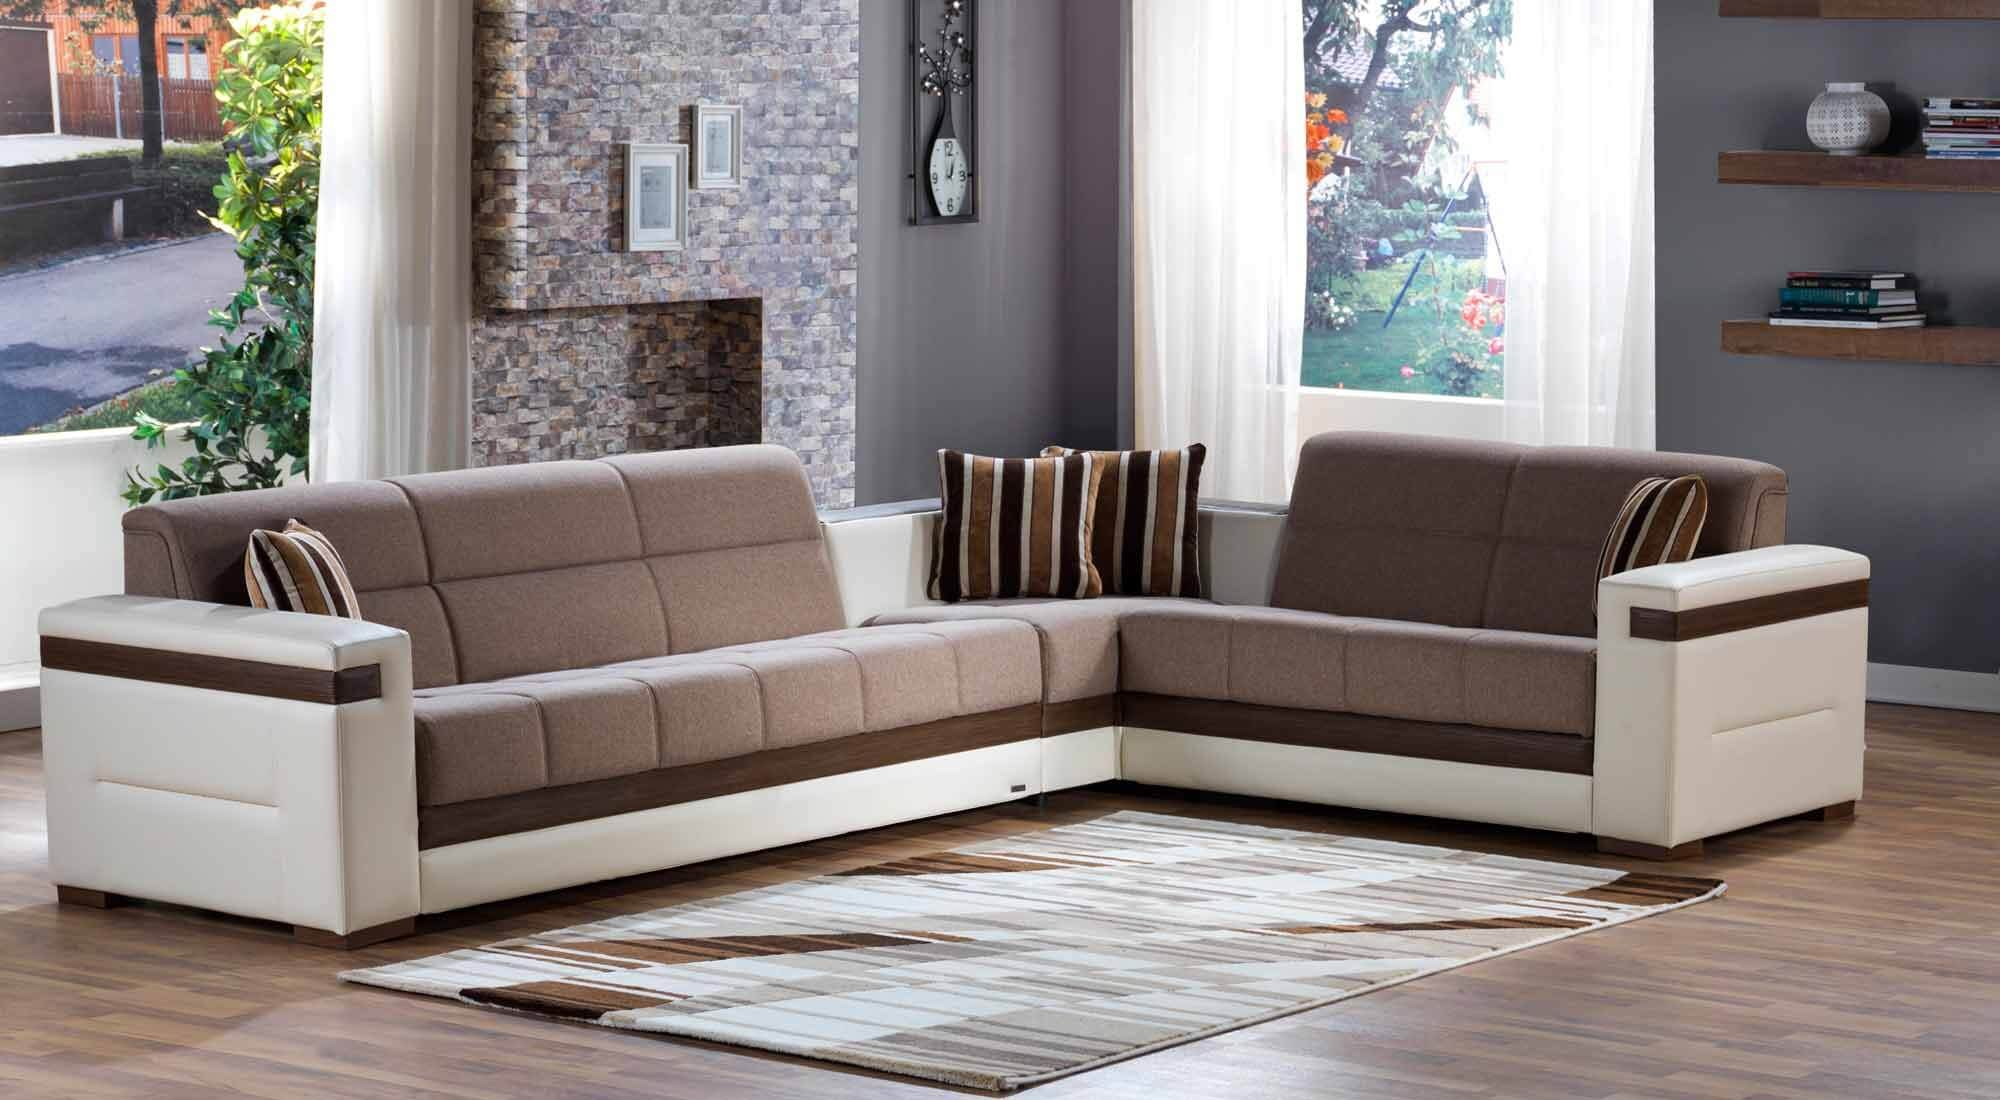 Moon Sectional, Platin Mustard Buy Online At Best Price   SohoMod